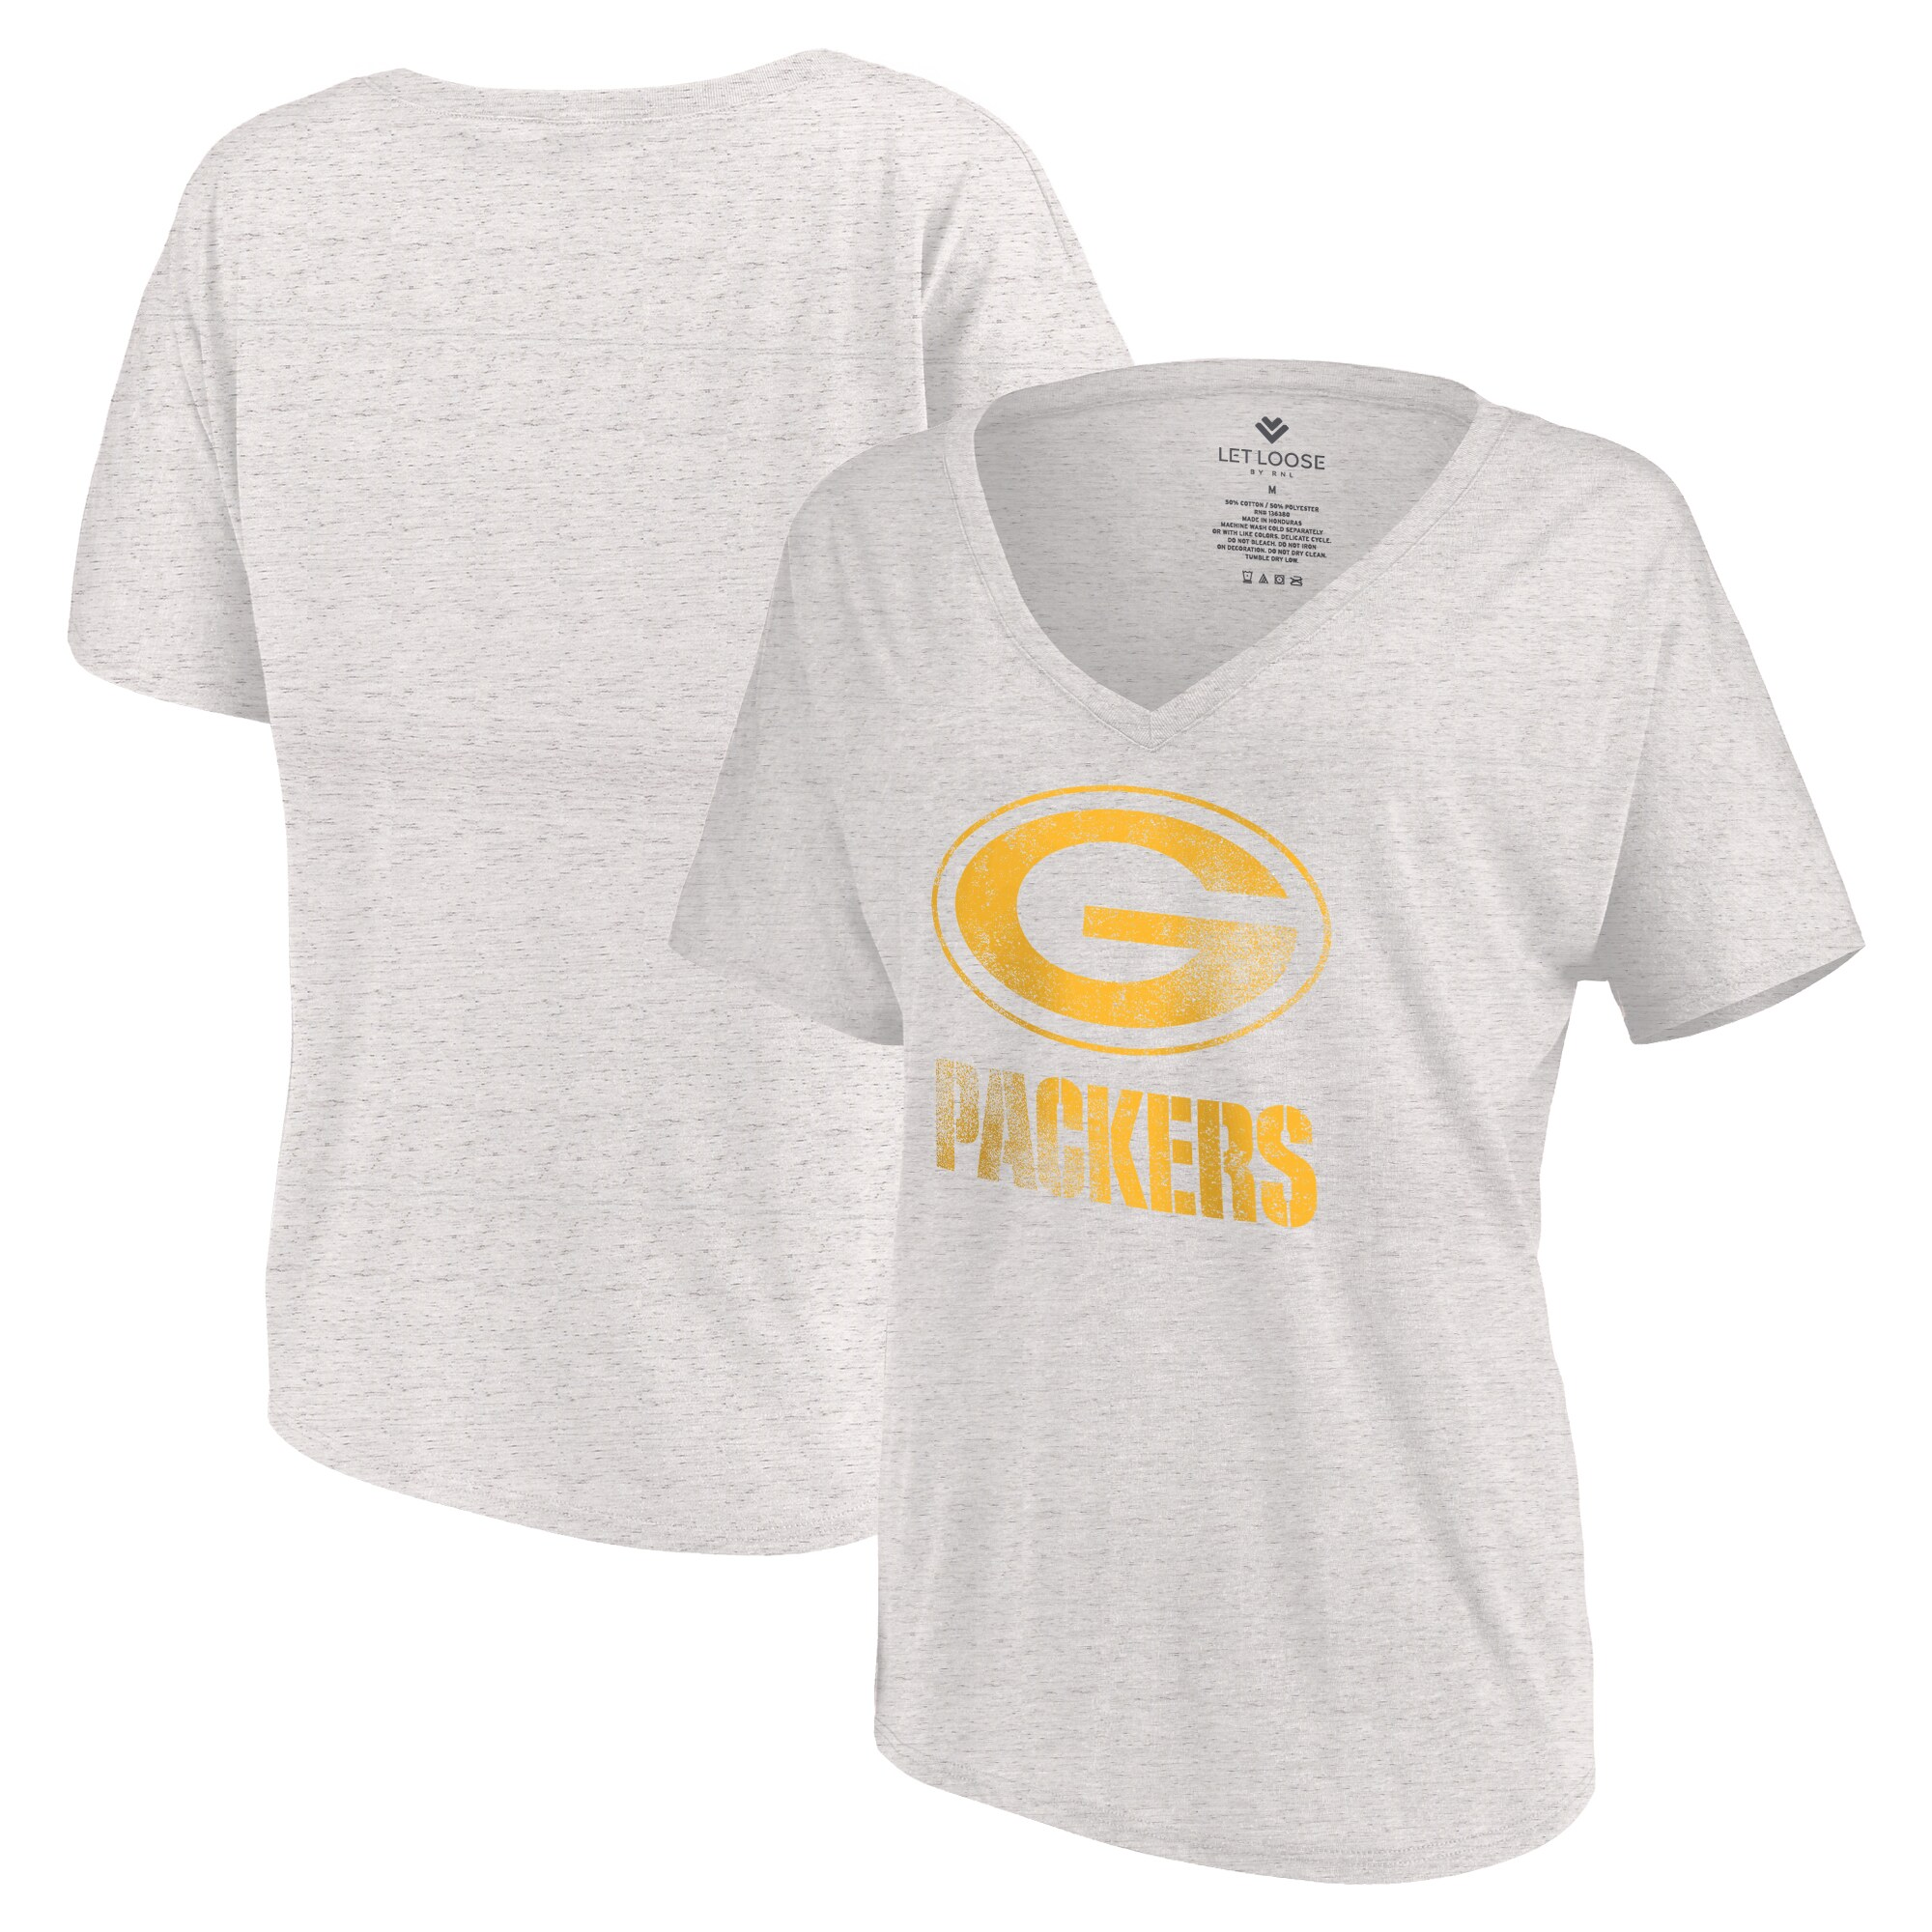 Green Bay Packers Let Loose by RNL Women's Distressed Primary V-Neck T-Shirt - White